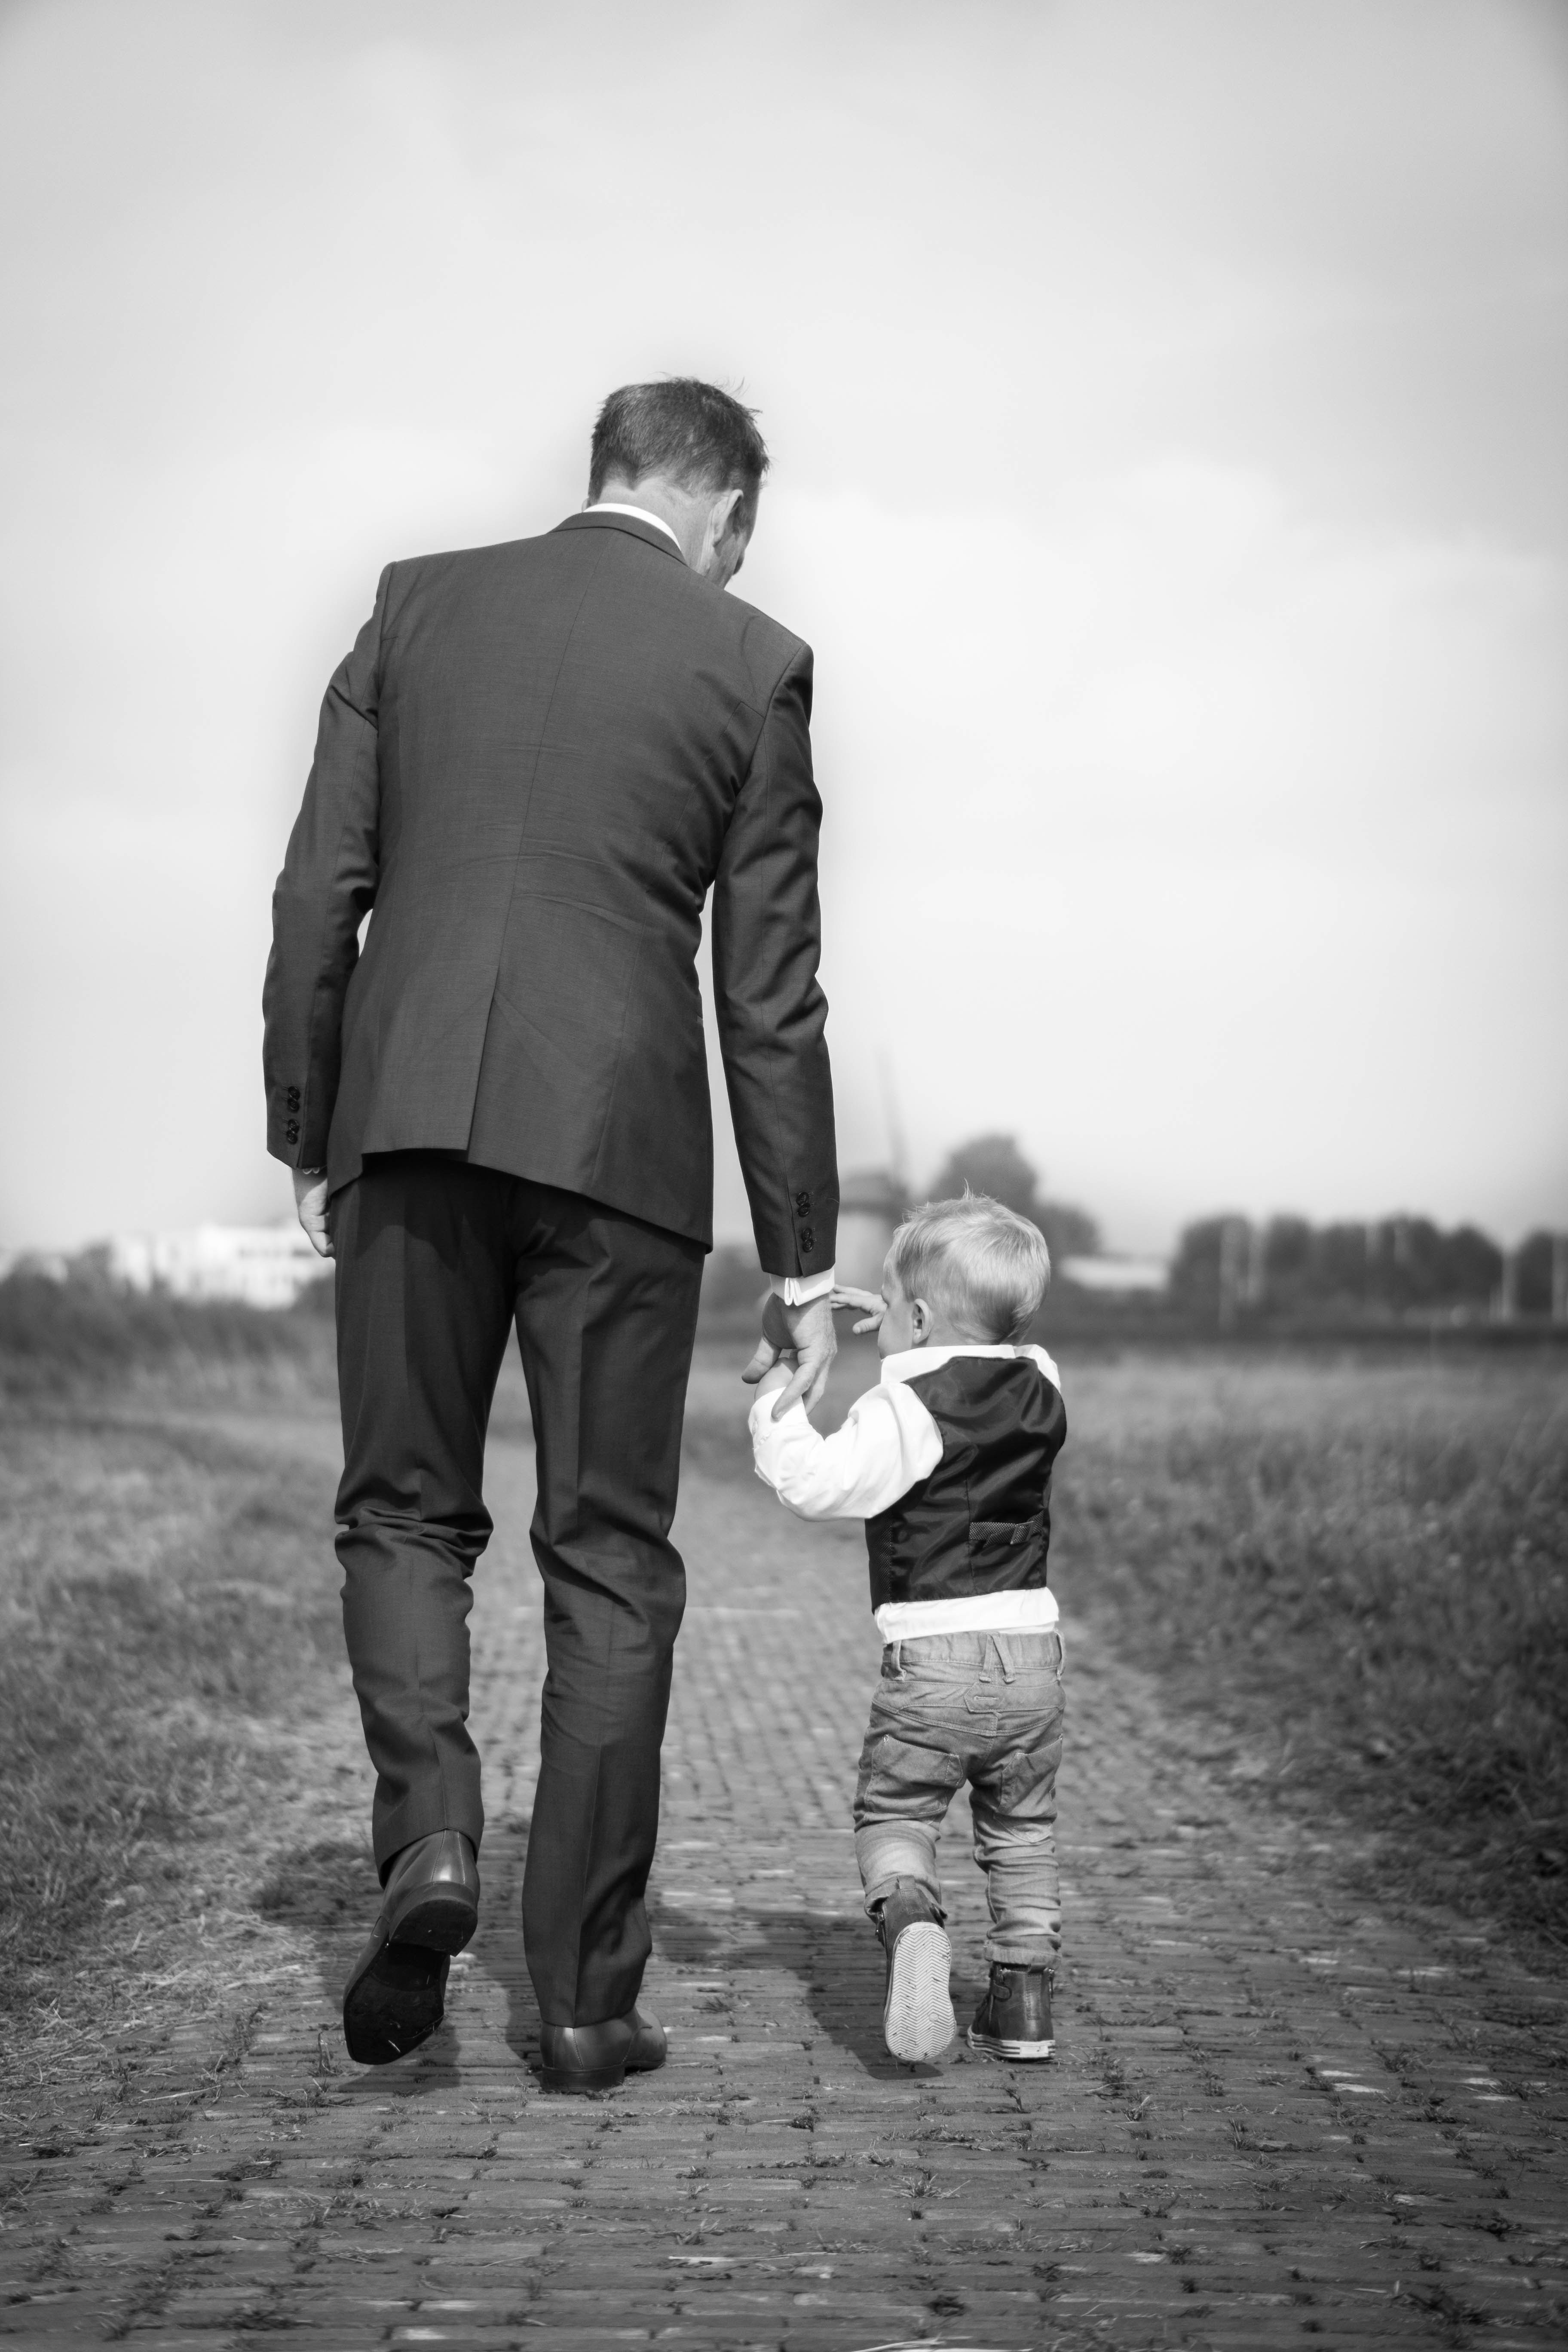 Two Reasons Parenting is Unequal Between Men and Women